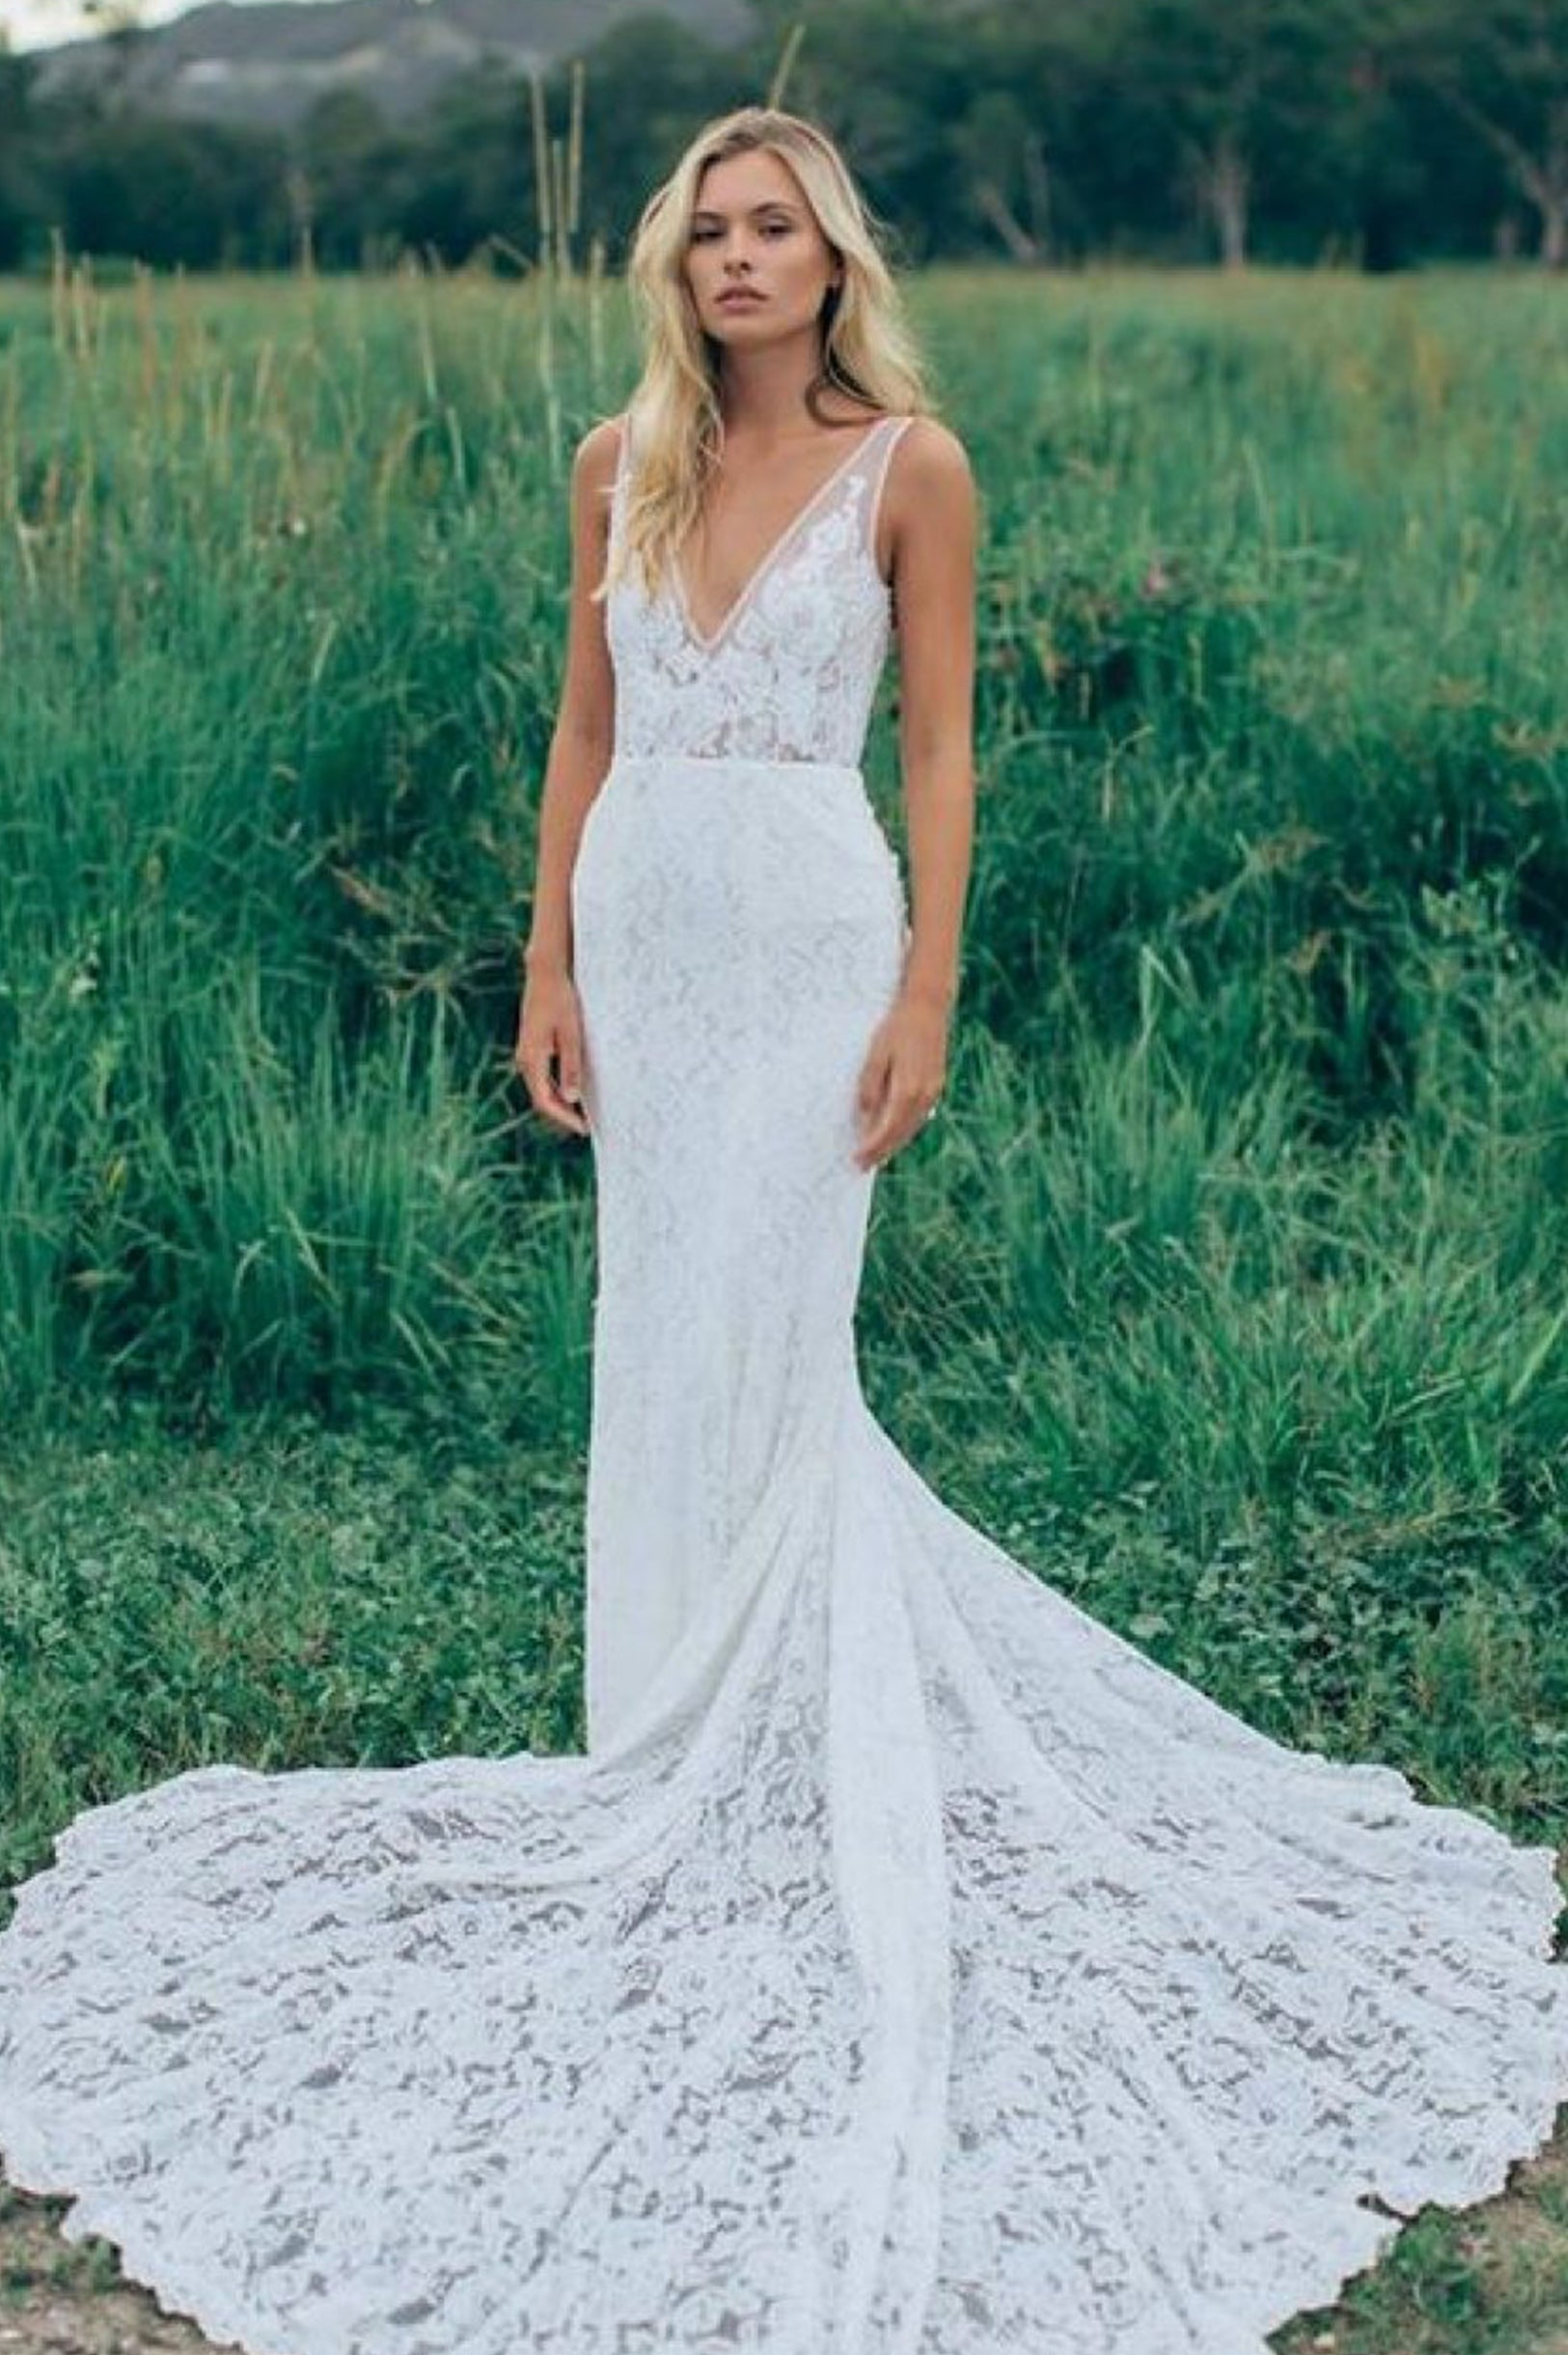 Mermaid Wedding Gown The Lovely Find Wedding Gown